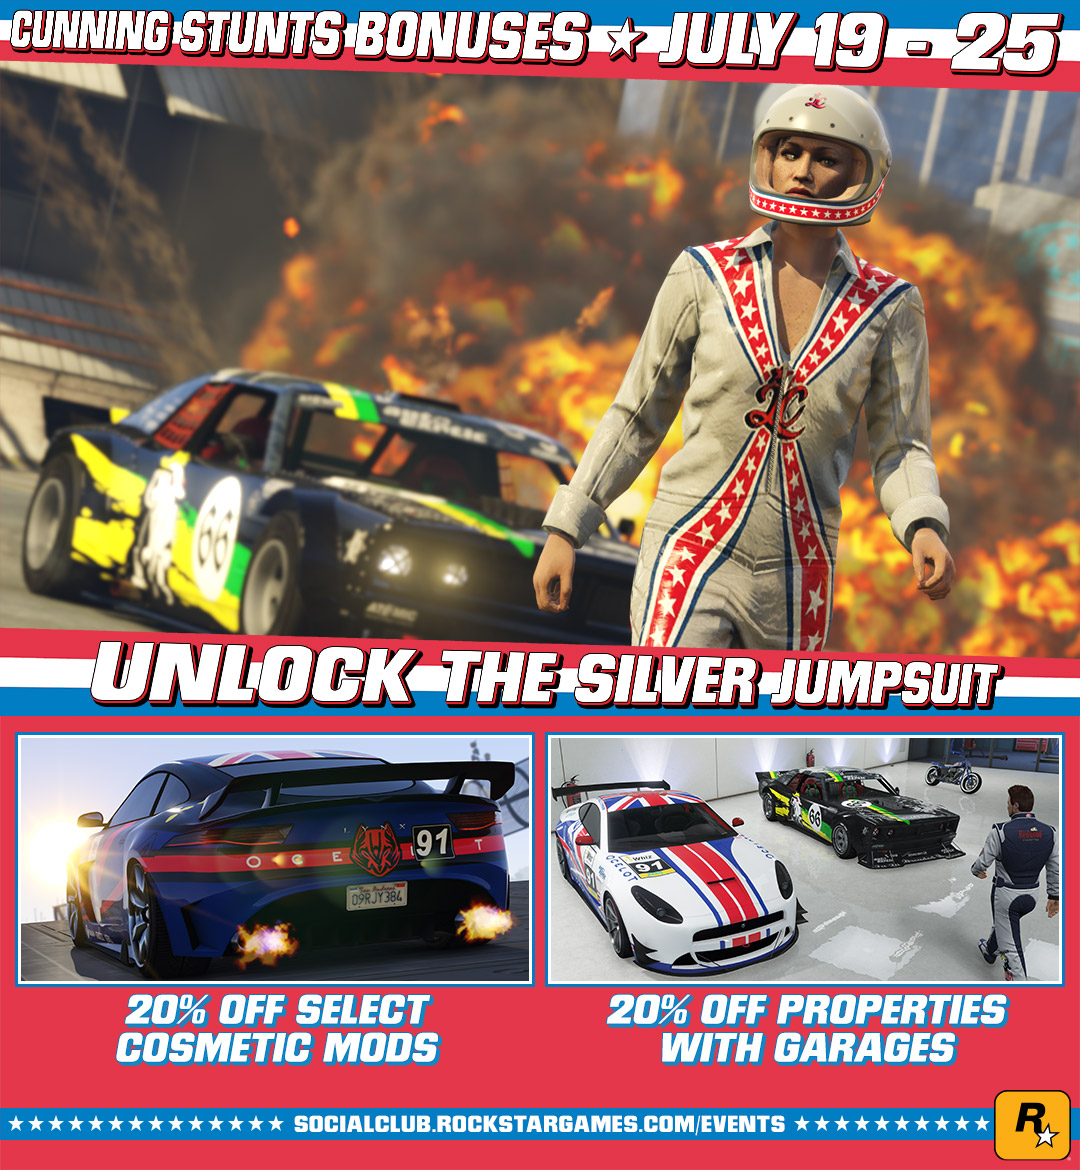 Gta 5 Garage: New Stunt Races And Vehicles Added To GTA Online: Cunning